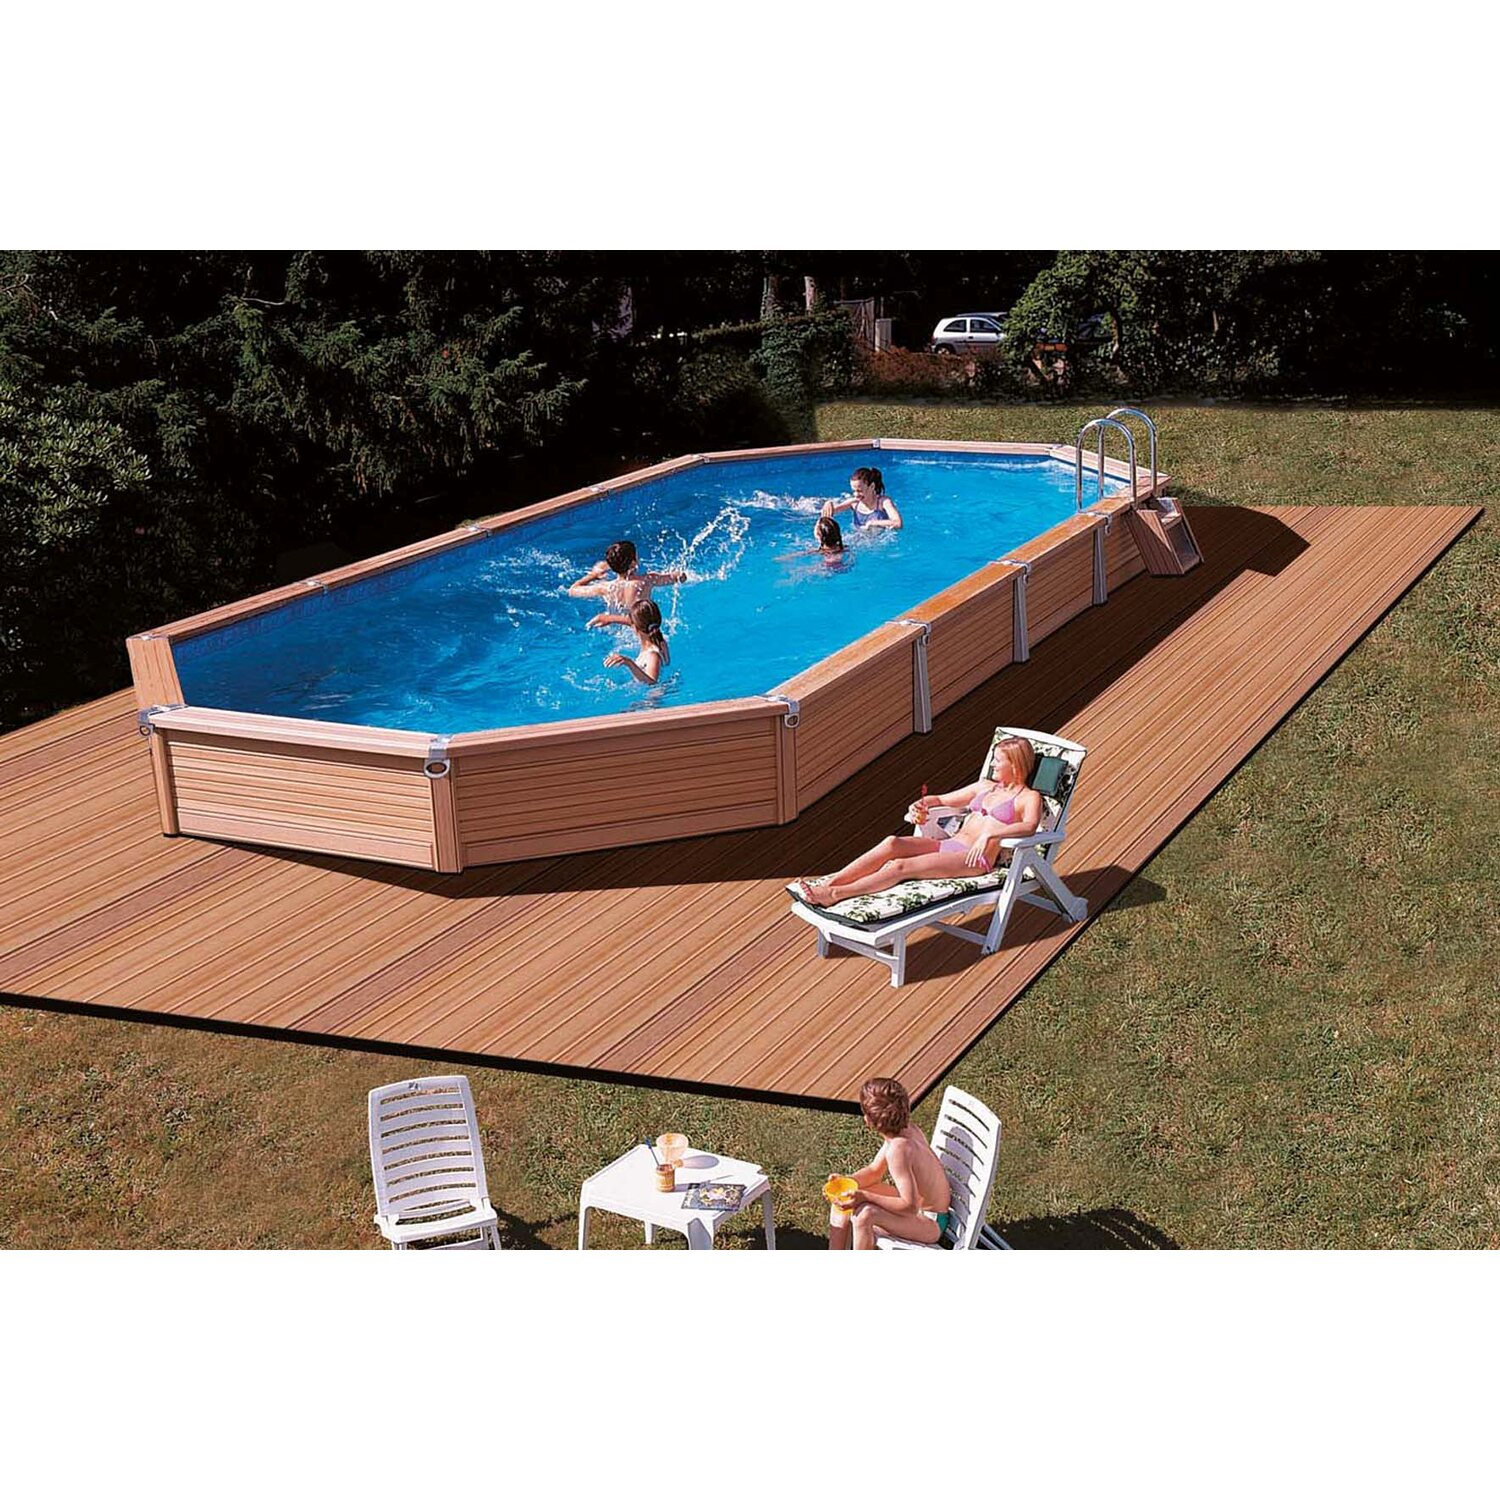 summer fun pool set azteck einbaubecken ovalform 560 cm x 400 cm x 165 cm kaufen bei obi. Black Bedroom Furniture Sets. Home Design Ideas